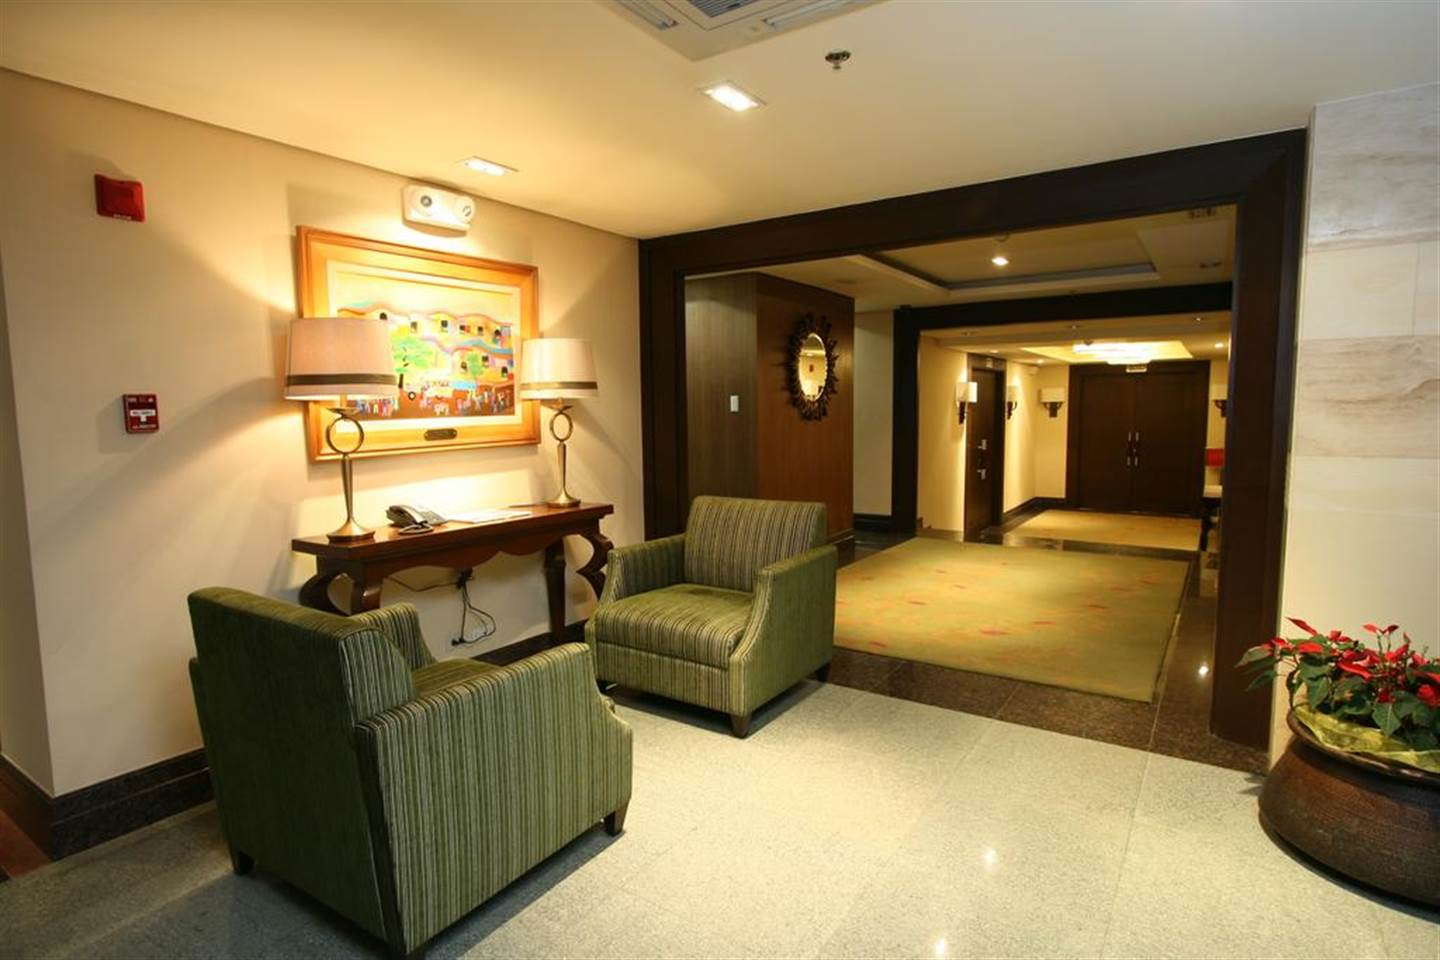 Adorable Superior Room - Hotel in Makati